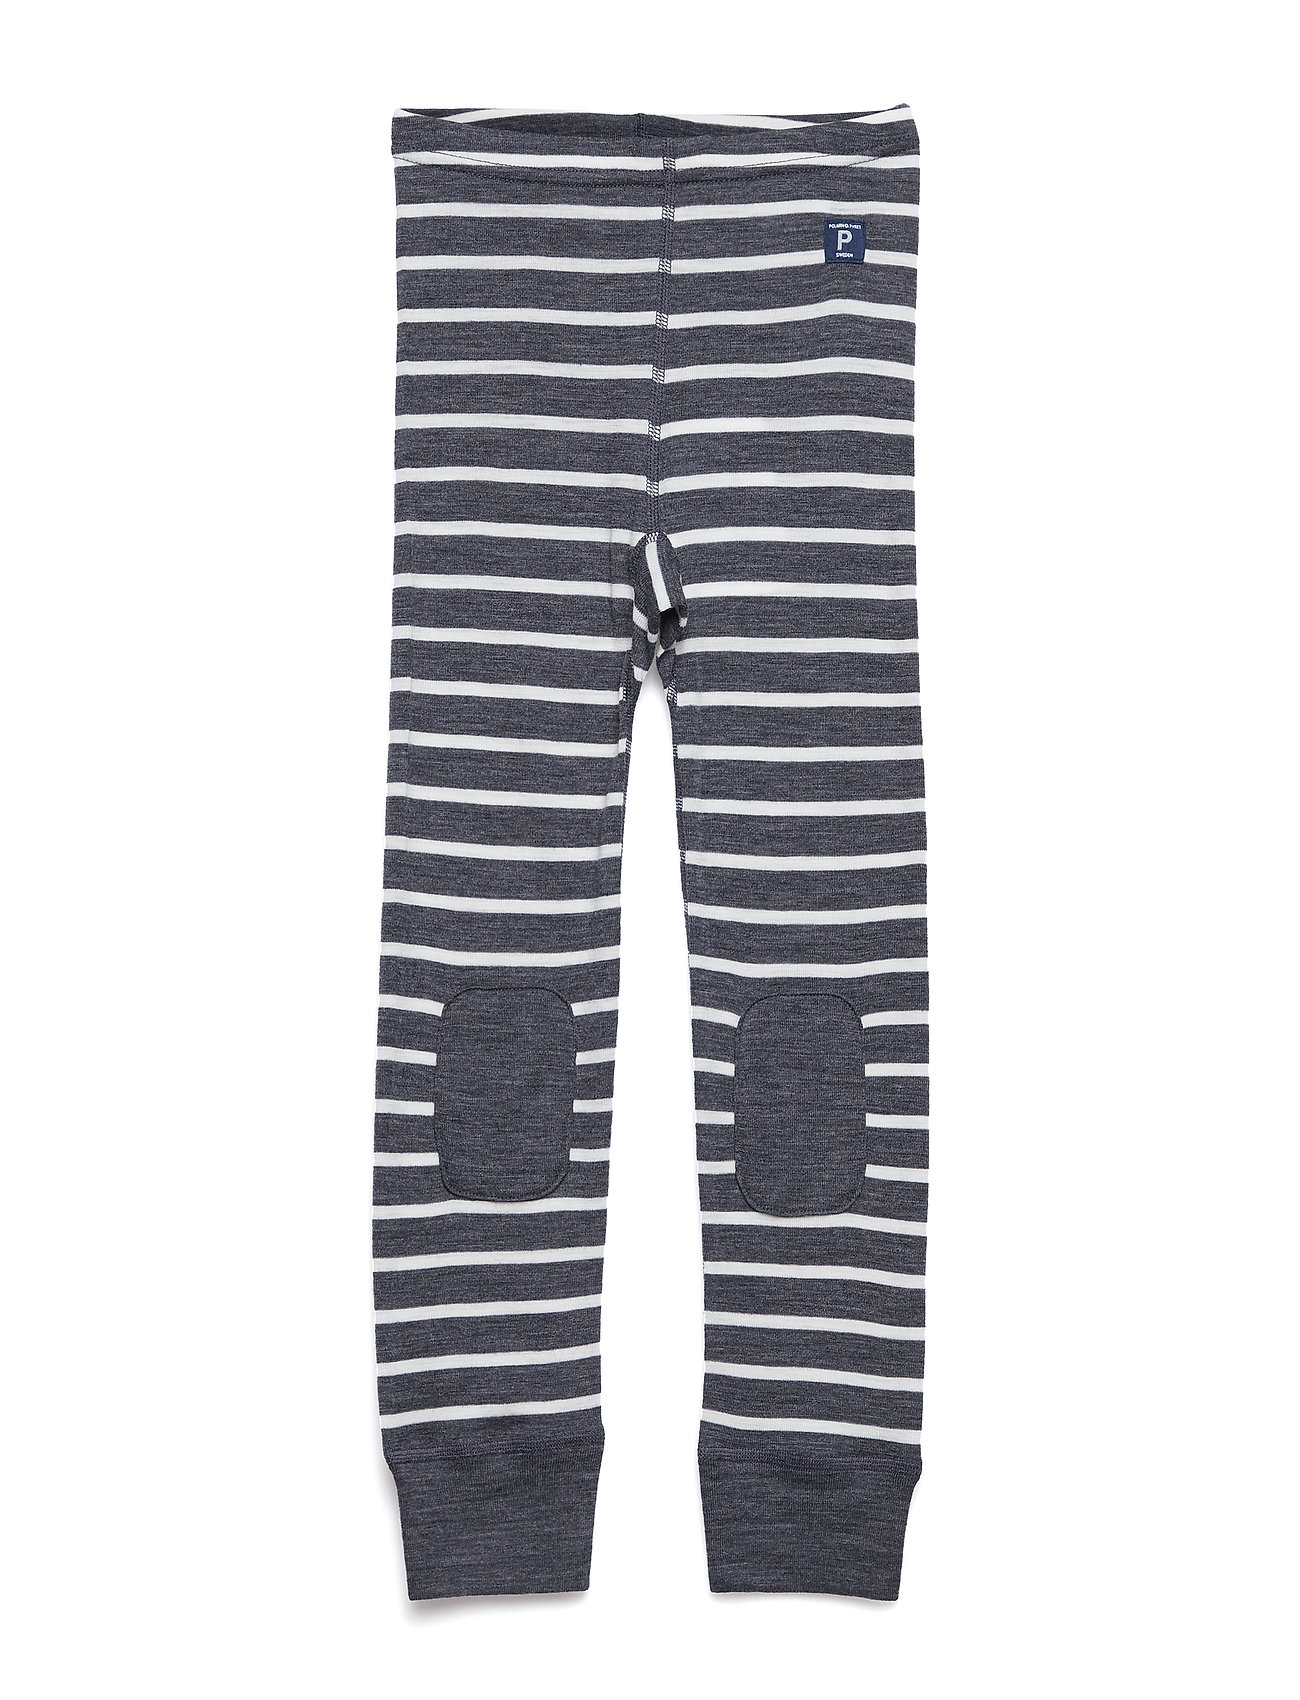 Polarn O. Pyret Long Johns Wool Striped Newborn